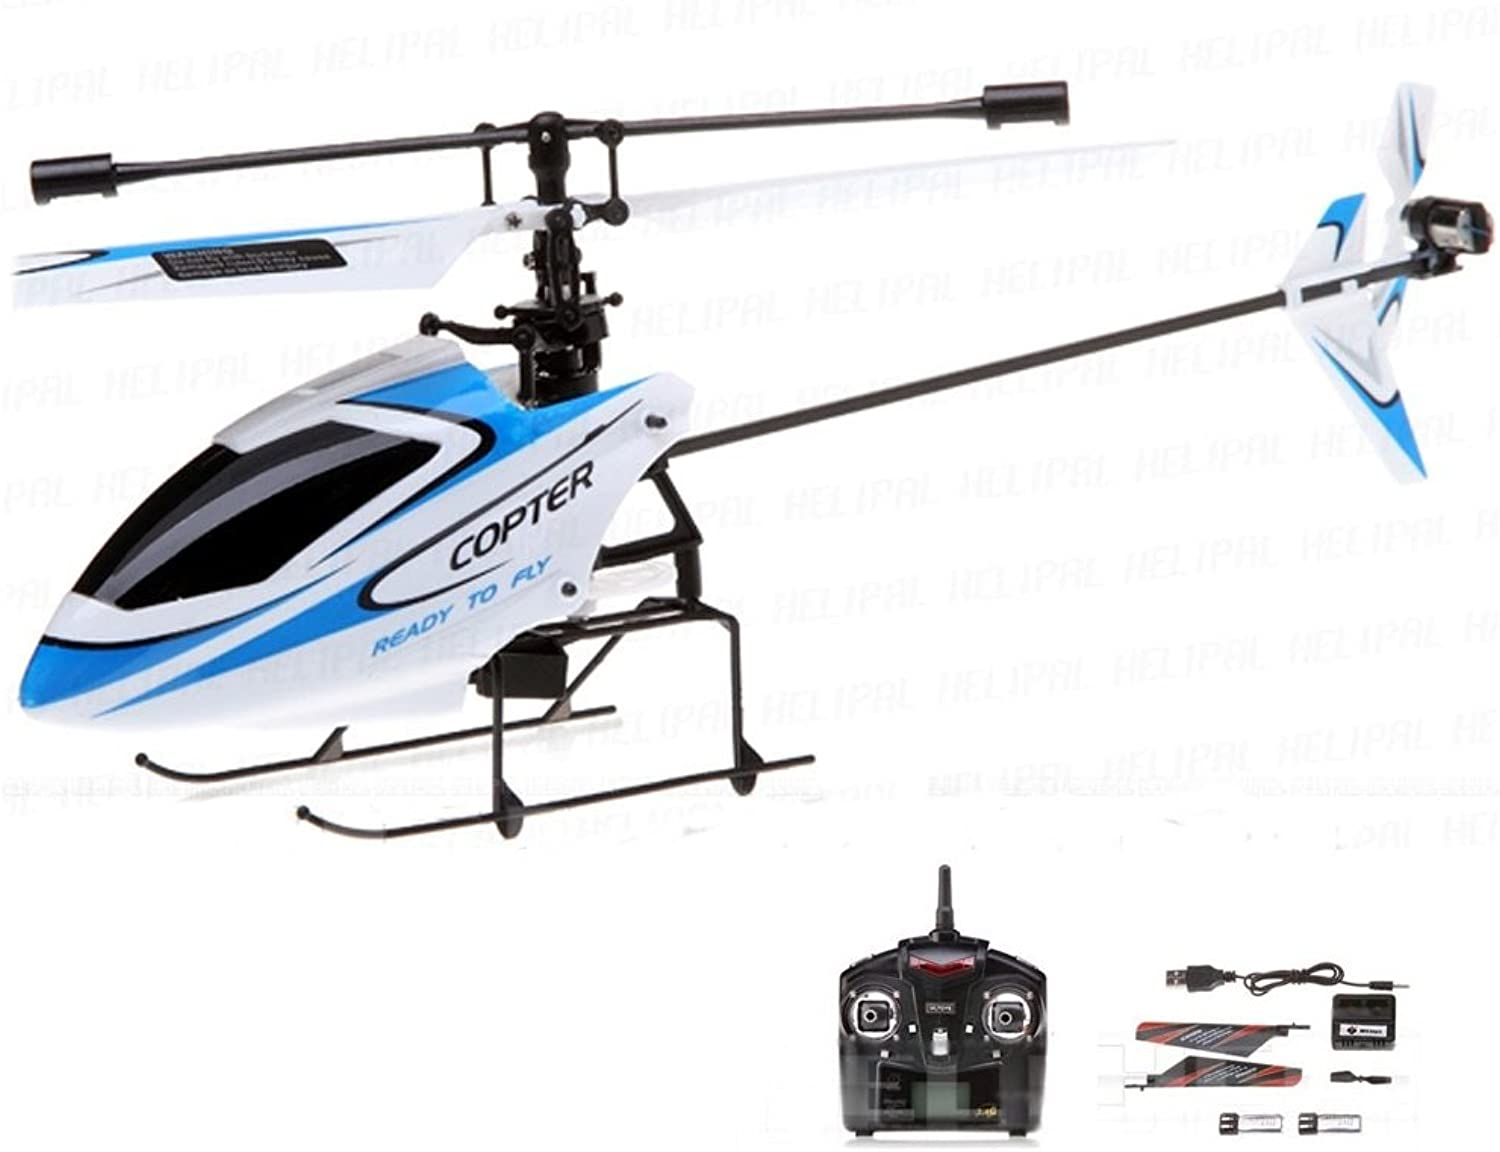 4.5 Channel 2.4Ghz RC Remote Control Helicopter in Mega Set Helicopter with 2.4 Ghz, Gyro System RTF including 2 x Battery and CrashKit